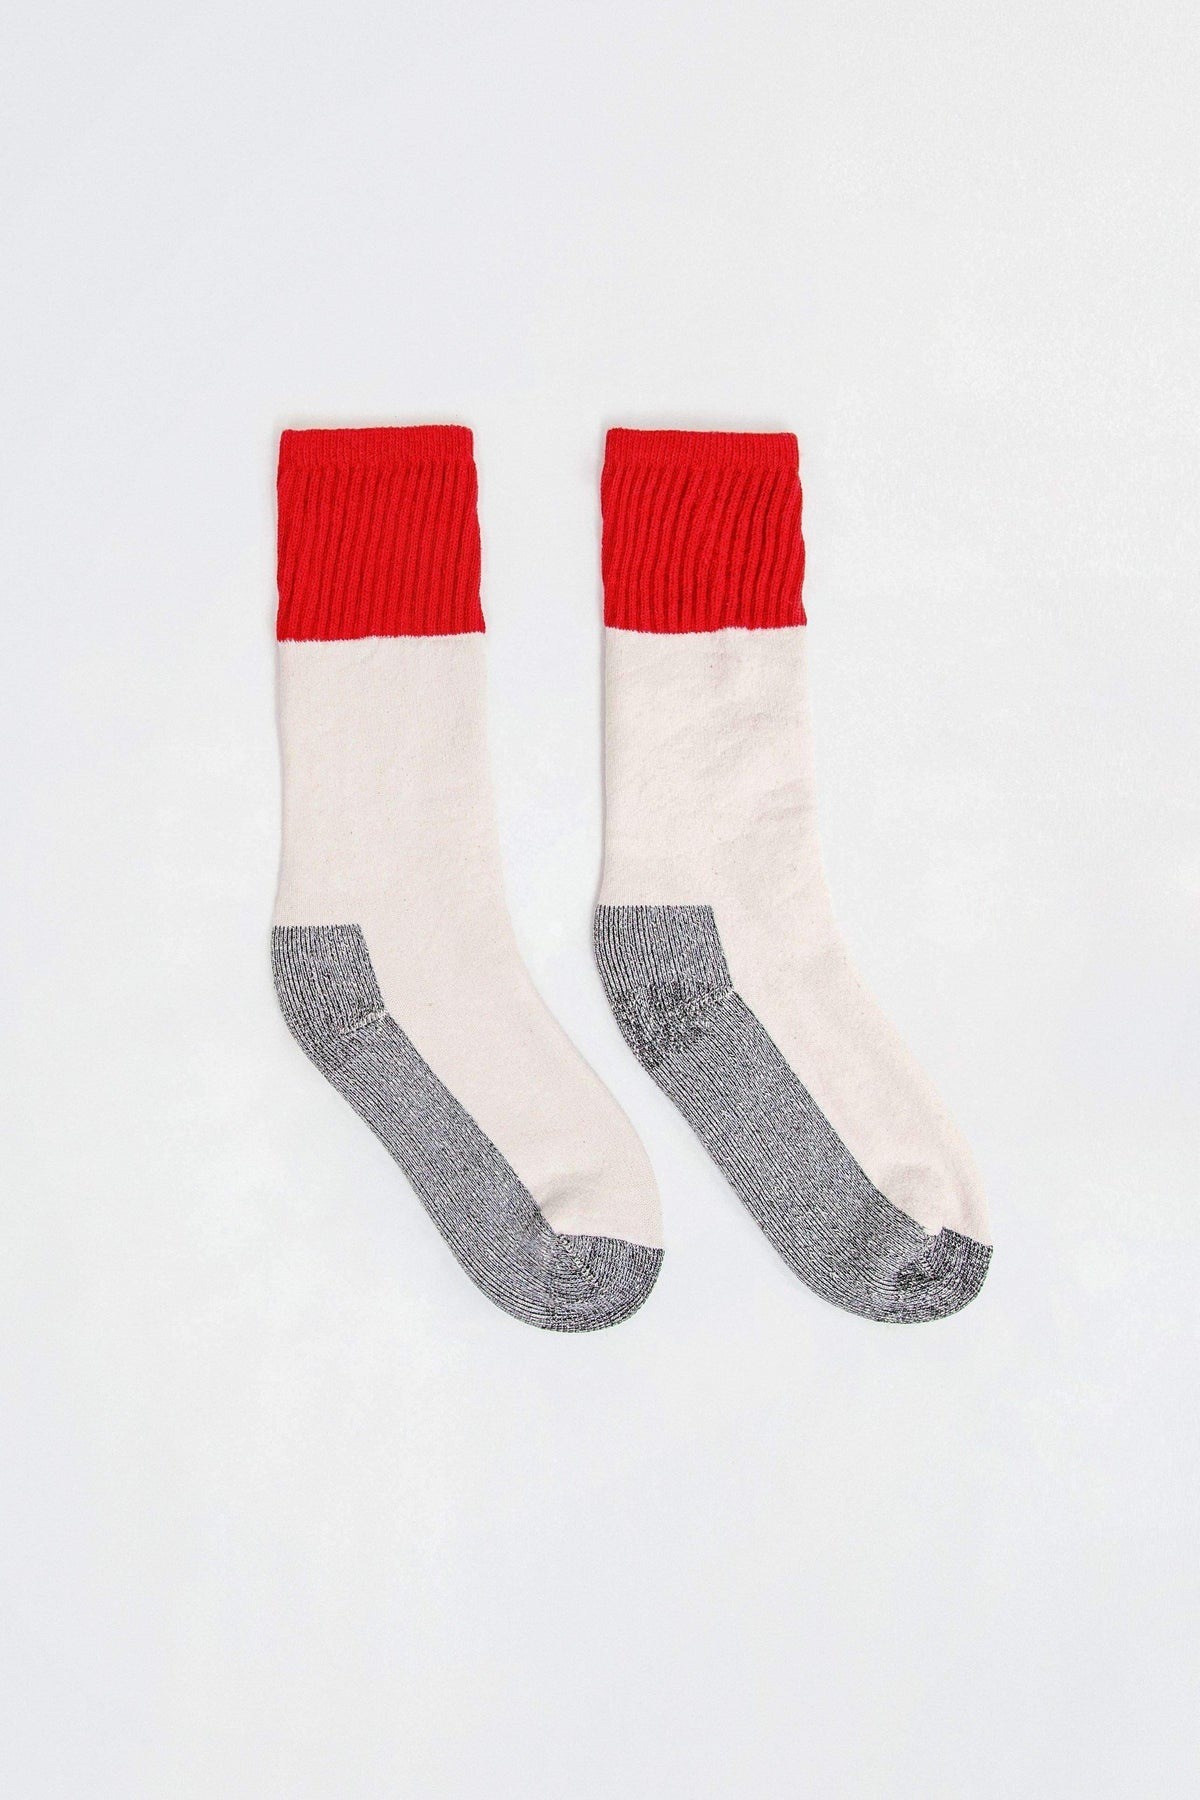 CBLKSOCK - Color Block Boot Sock Socks Los Angeles Apparel RED OS